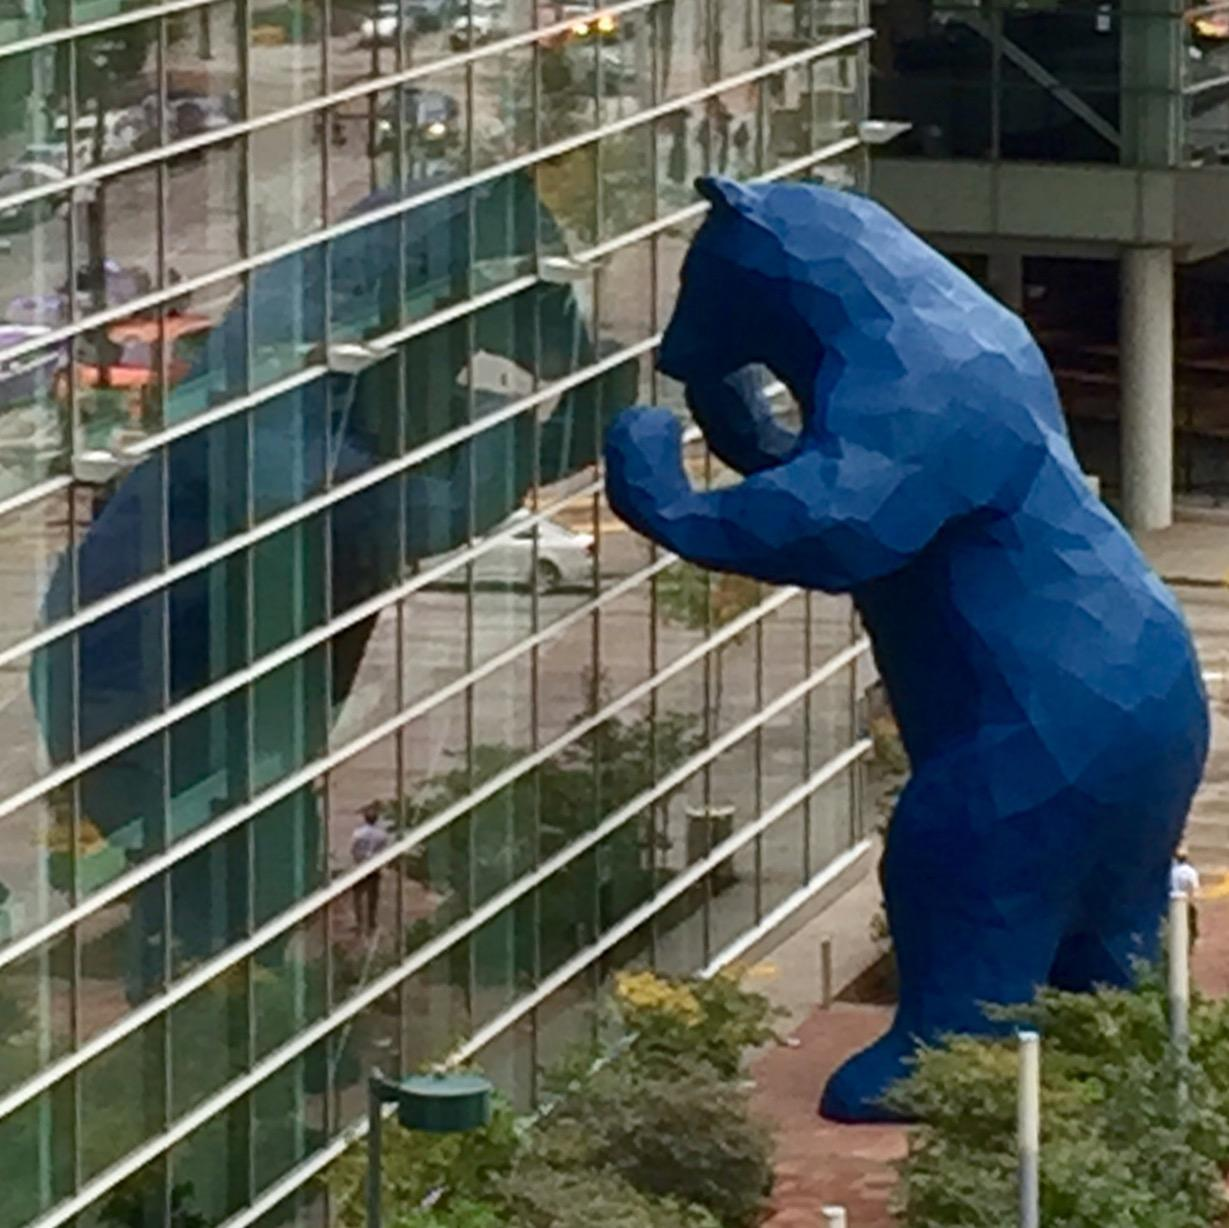 RT @ElliottGSpencer: Giant blue bear on the loose in Colorado. http://t.co/JHCHJtU5B2